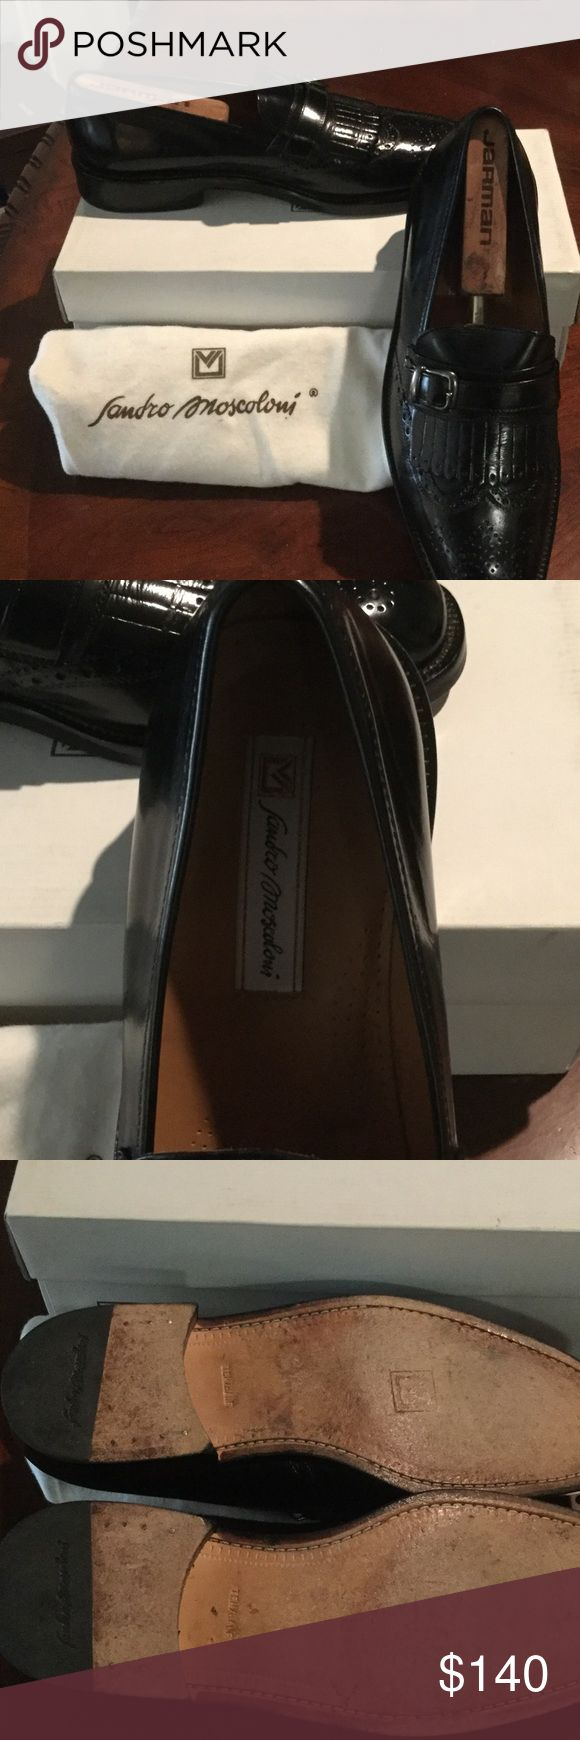 Sandro Moscoloni Men Shoes These shoes are like new condition,They were purchase at Nordstrom for $329 the leather is impeccable and my husband keeps shoe trees in all of his shoes and they were also kept in dust bag inside of box. Sandro Moscolino Shoes Loafers & Slip-Ons